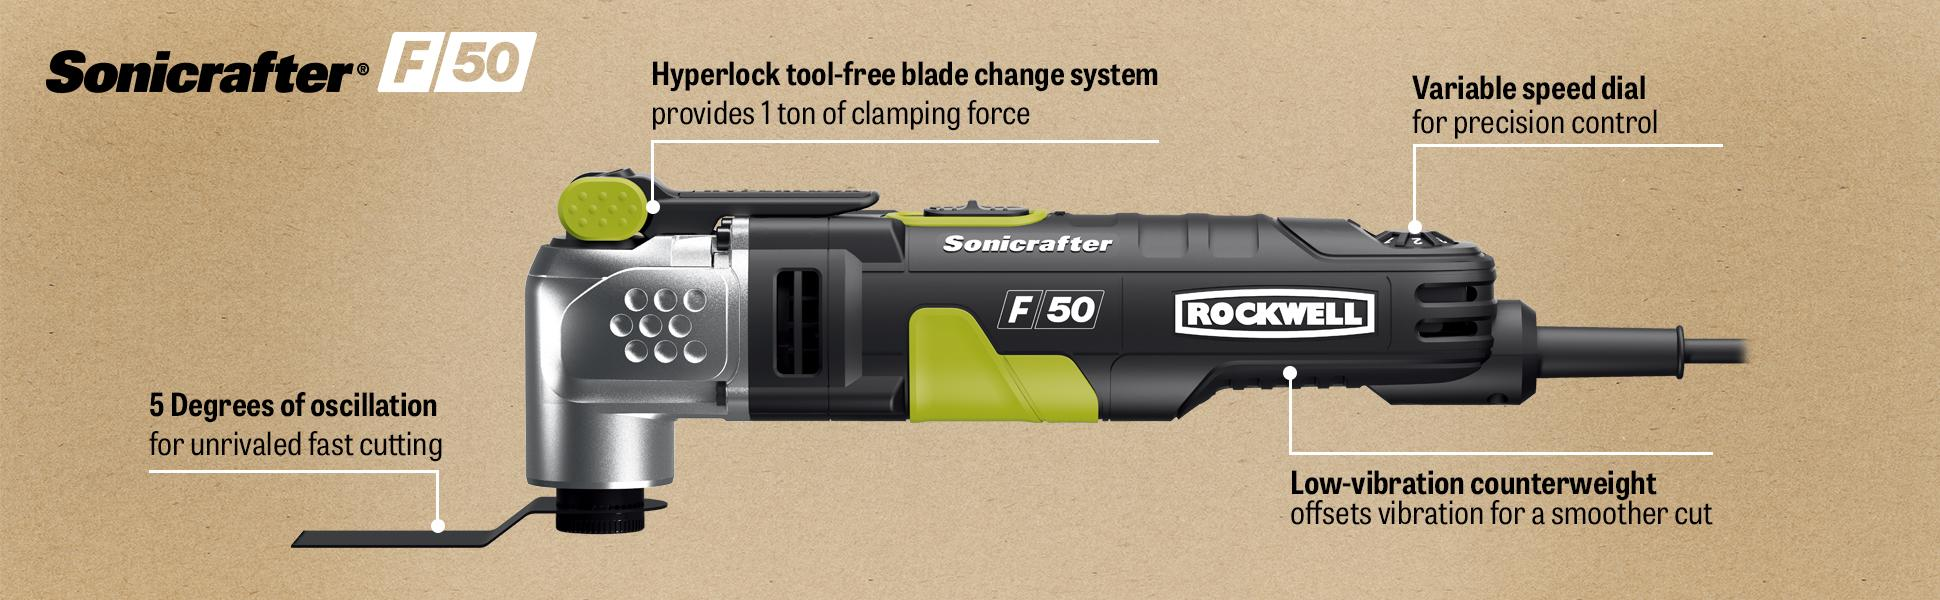 Rockwell Sonicrafter F80